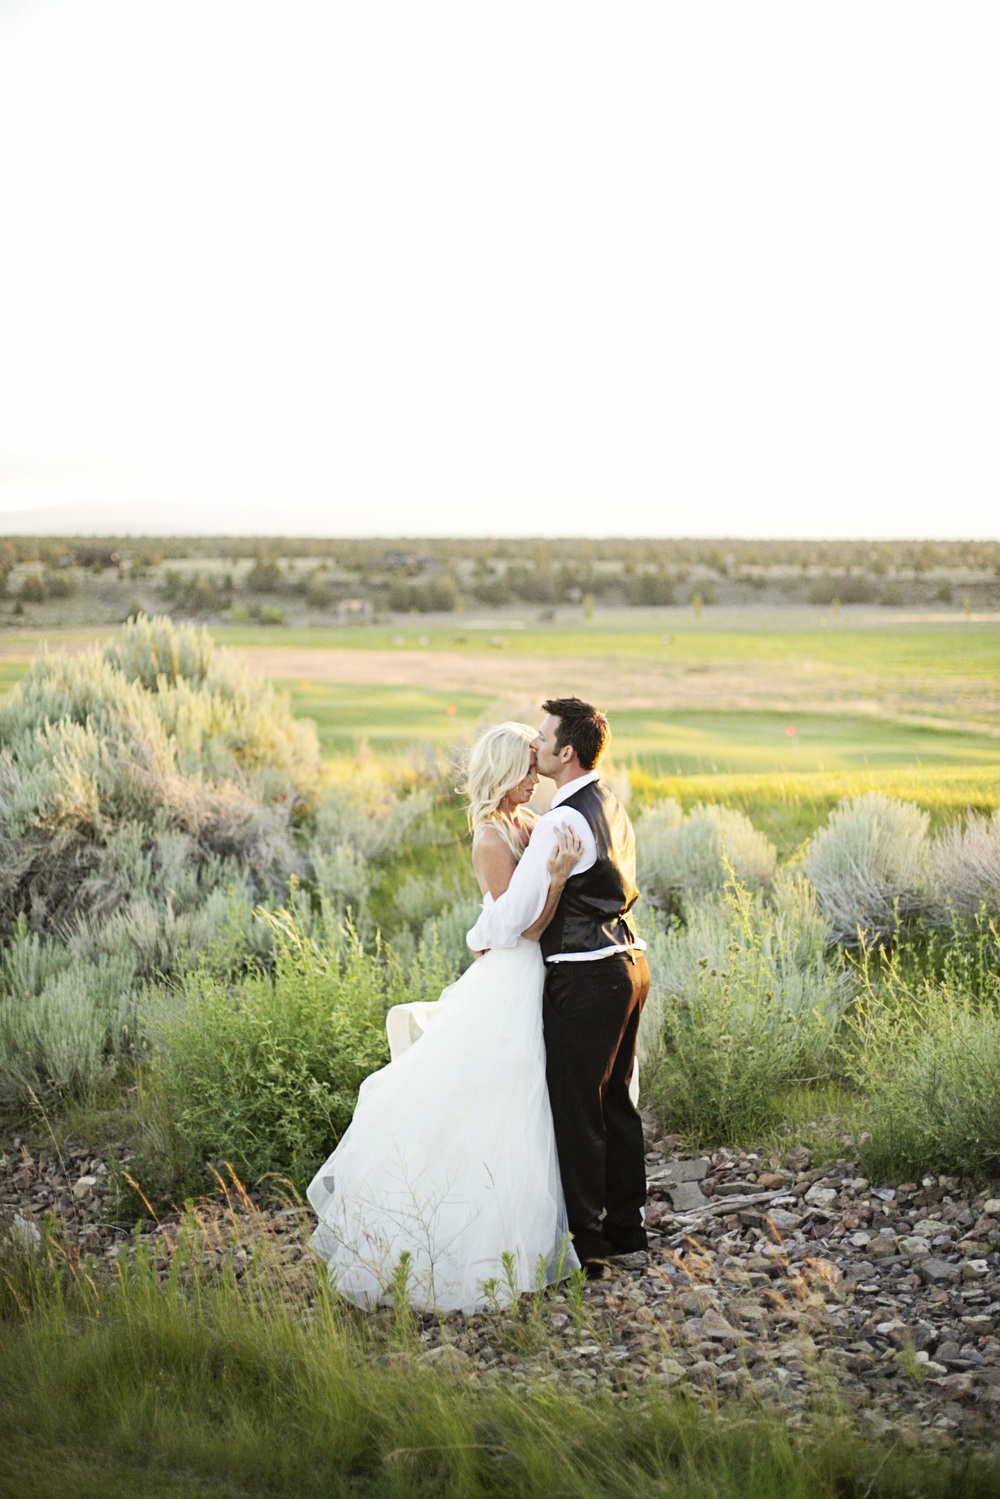 http://www.colleenamelia.com/blog/rebecca-mike-brasada-ranch-wedding